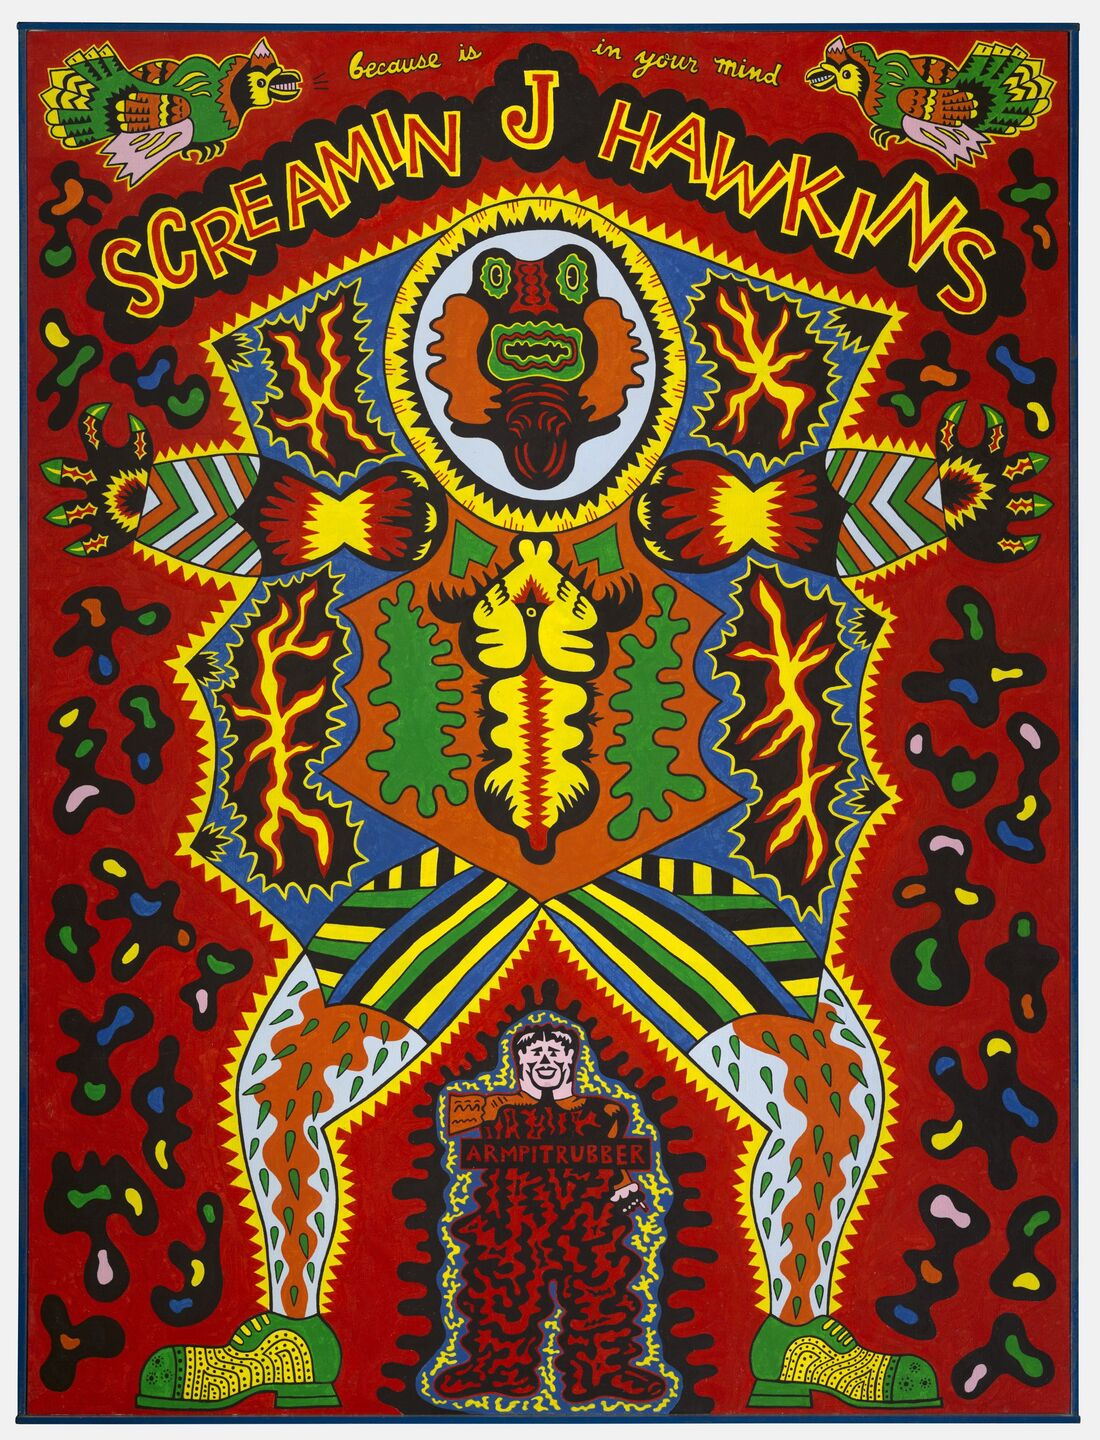 Karl Wirsum. Screamin' Jay Hawkins, 1968. The Art Institute of Chicago, Mr. and Mrs. Frank G. Logan Purchase Prize Fund. ˝ Karl Wirsum. On view in Hairy Who? 1966–1969 at The Art Institute.